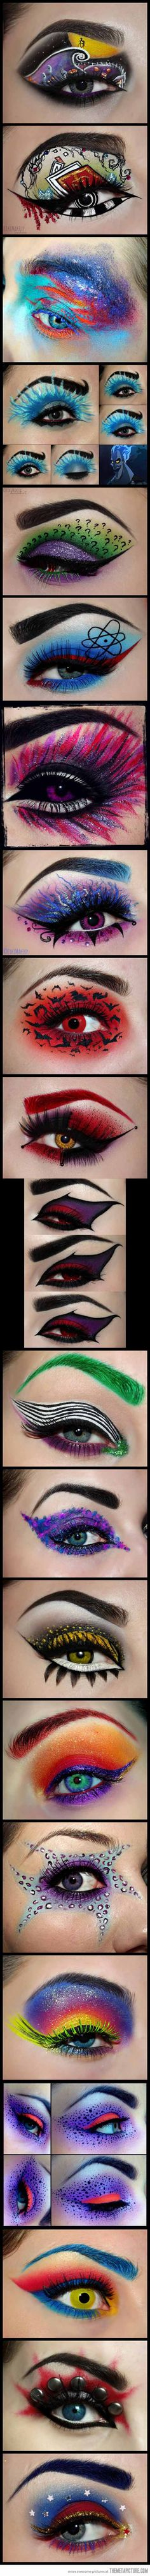 Movie makeup at it's most unique…fun ideas different cosplays #eye #makeup #eyemakeup